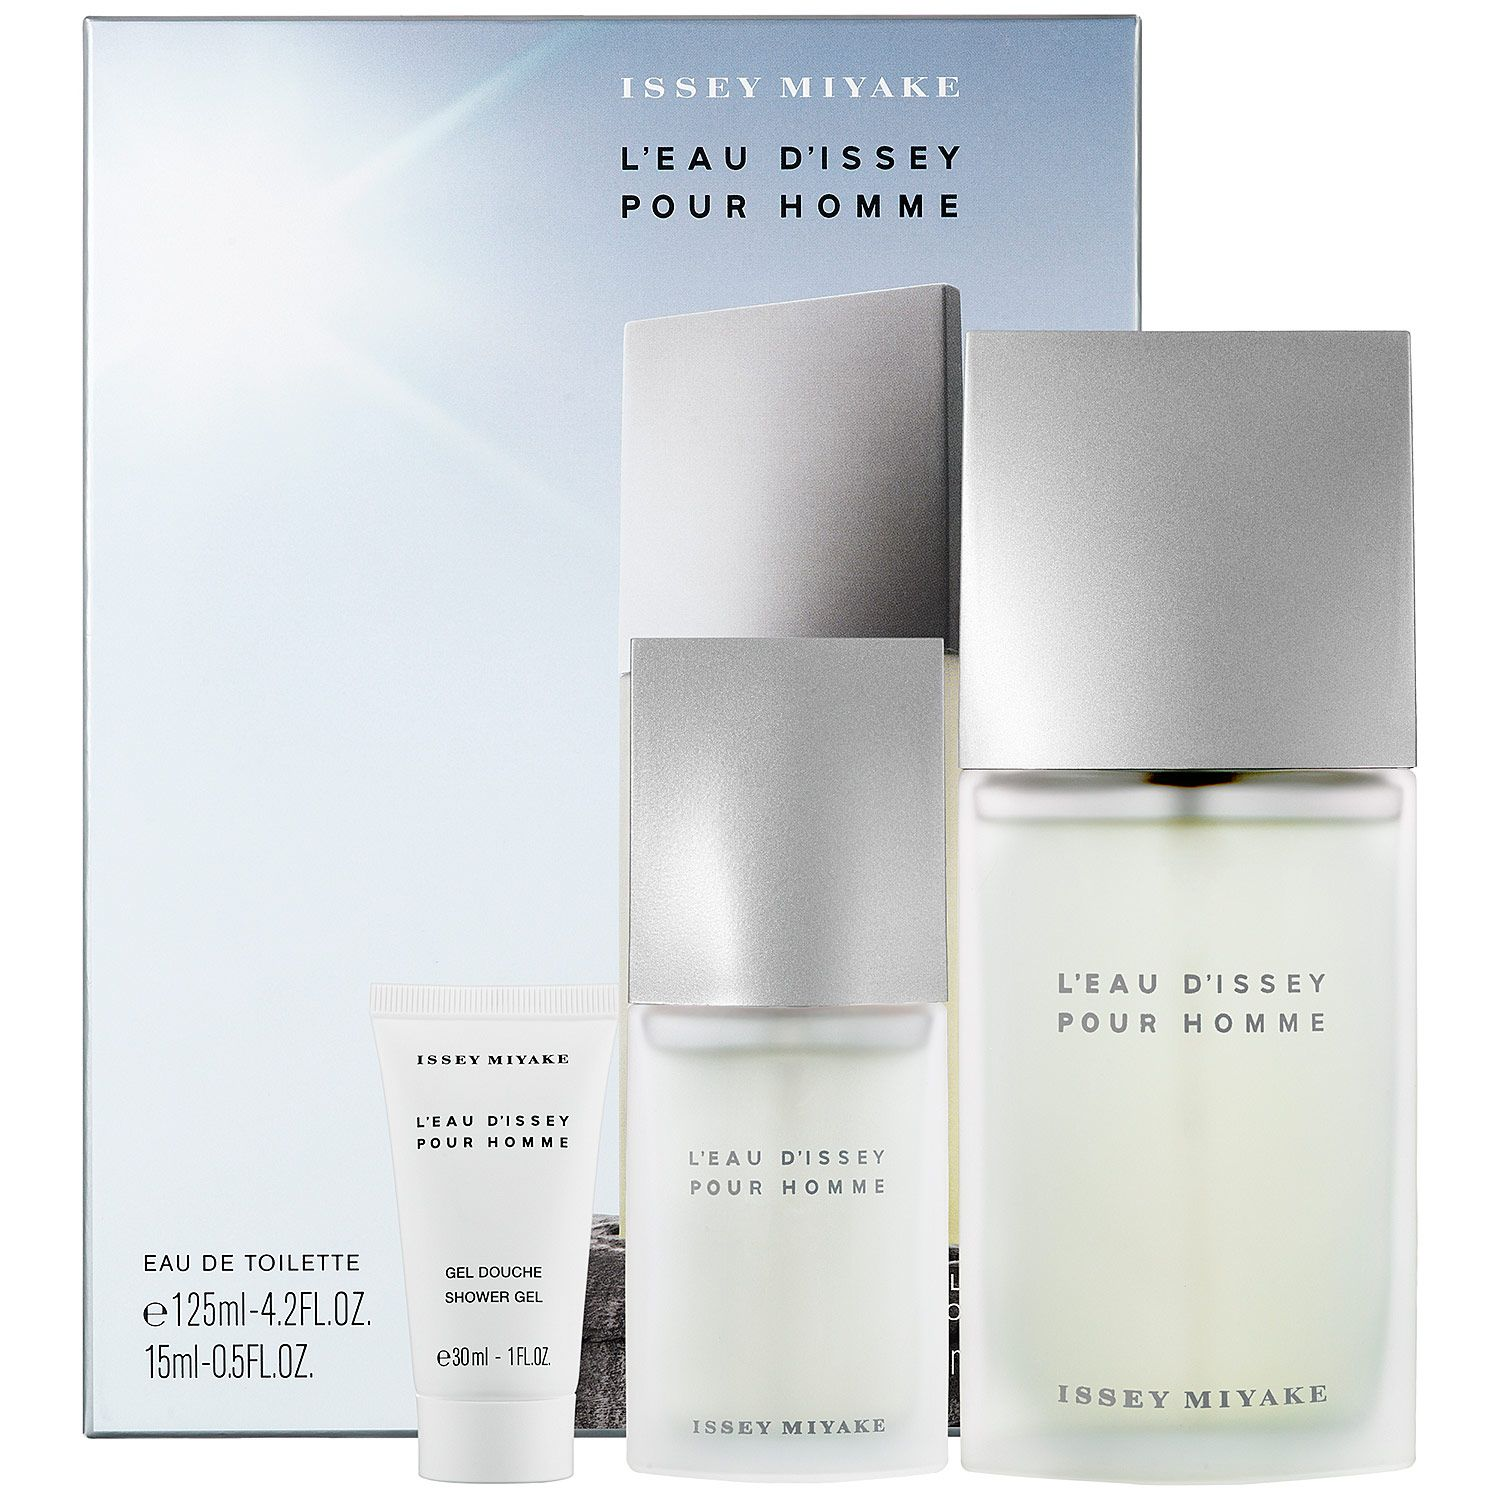 b848509fa40 Issey Miyake L Eau d Issey Pour Homme Gift Set  Sephora  gifts  giftsforhim